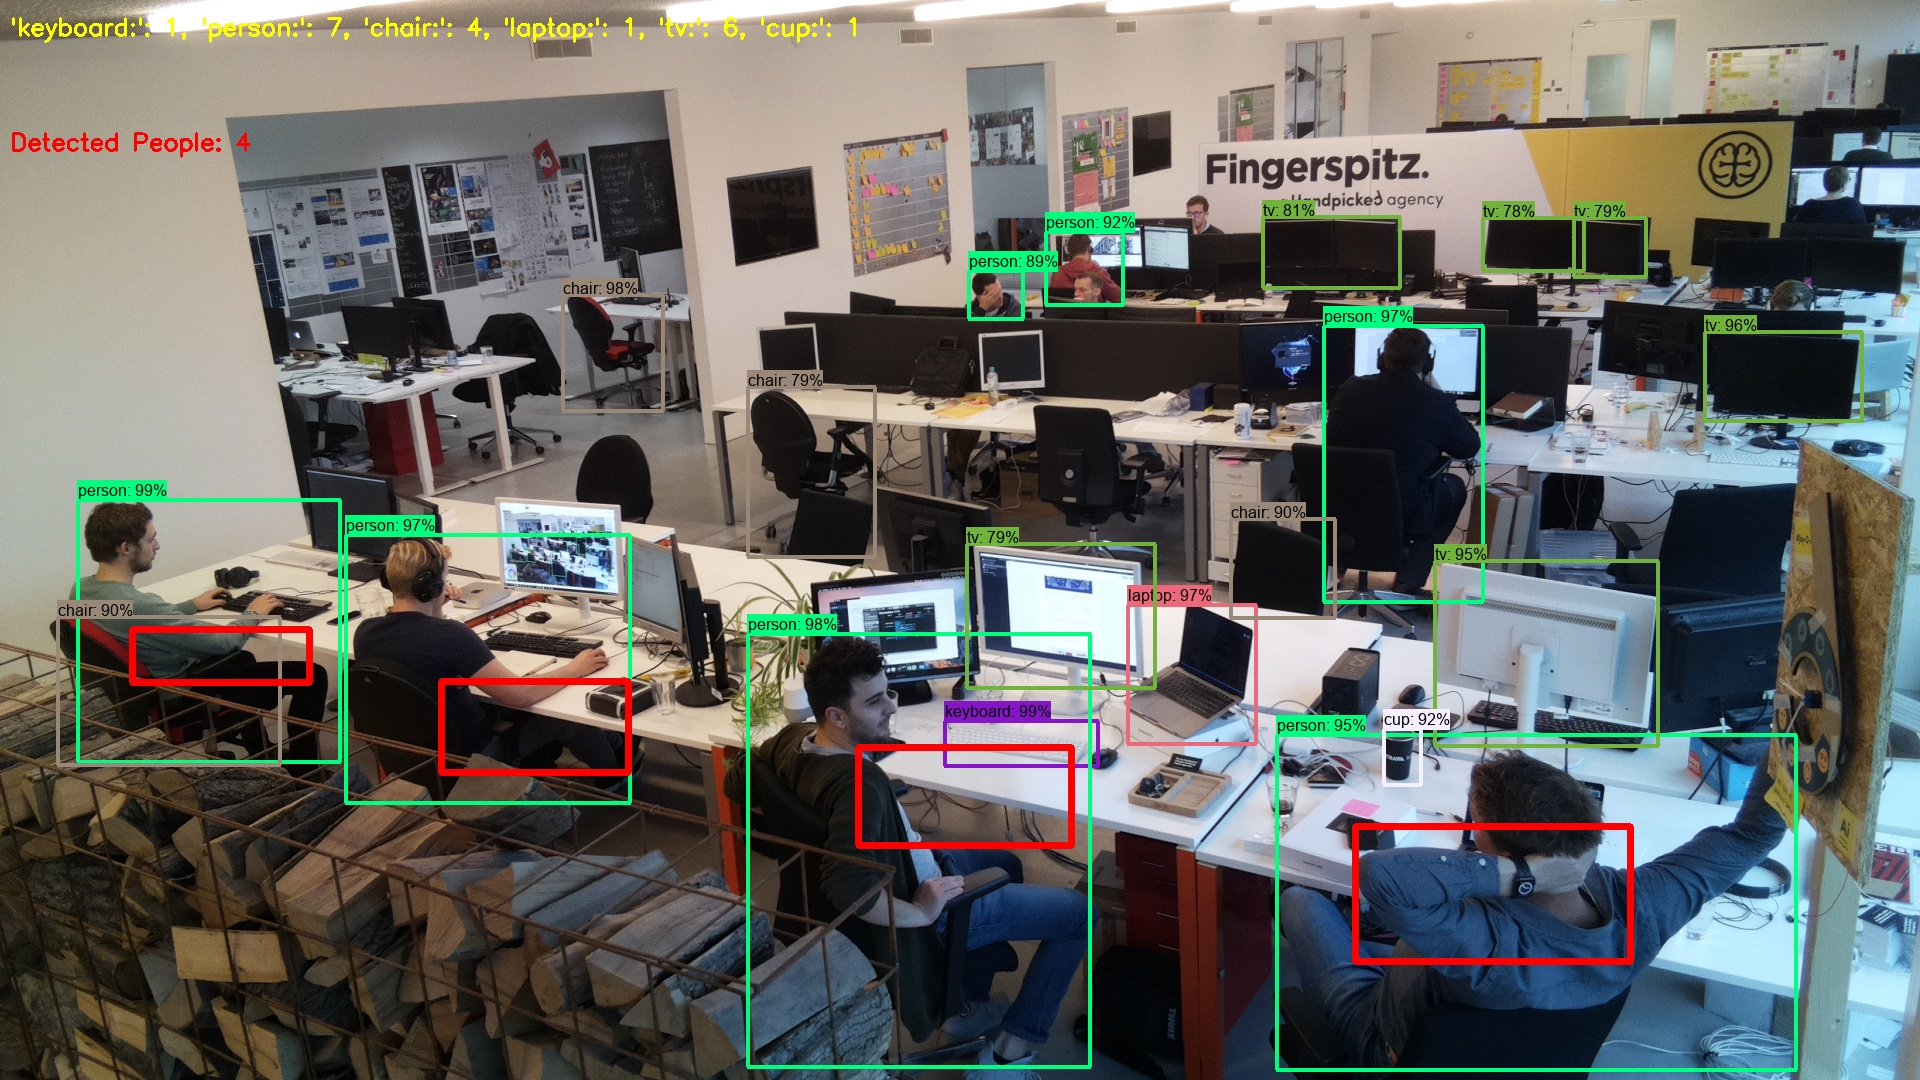 AI met our Handpicked workplace